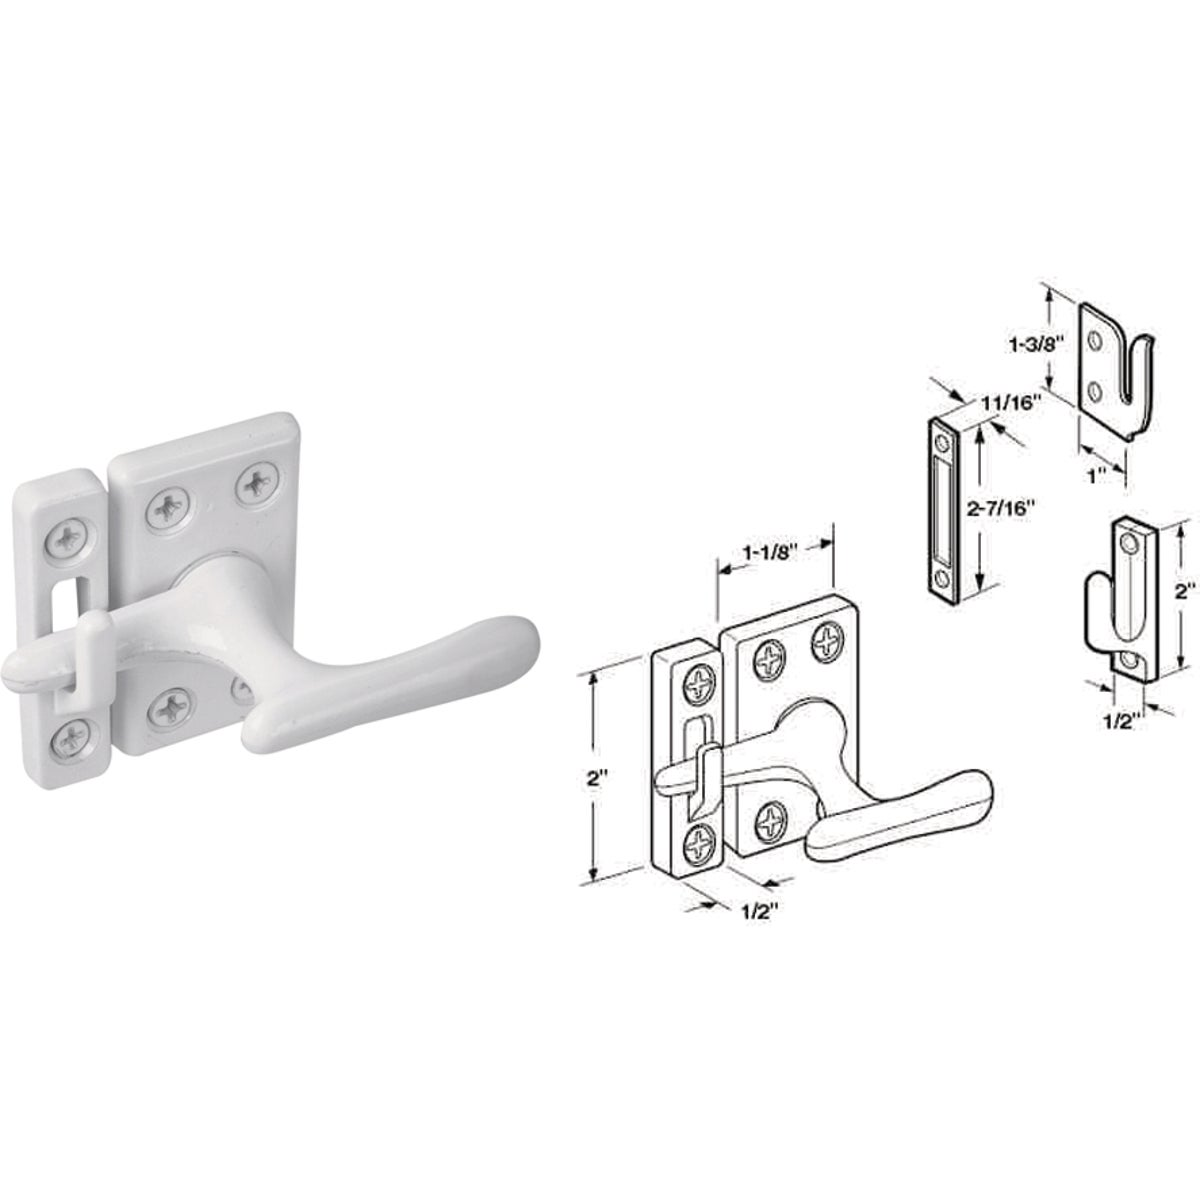 WHT CASEMENT FASTENER - U 9936 by Prime Line Products